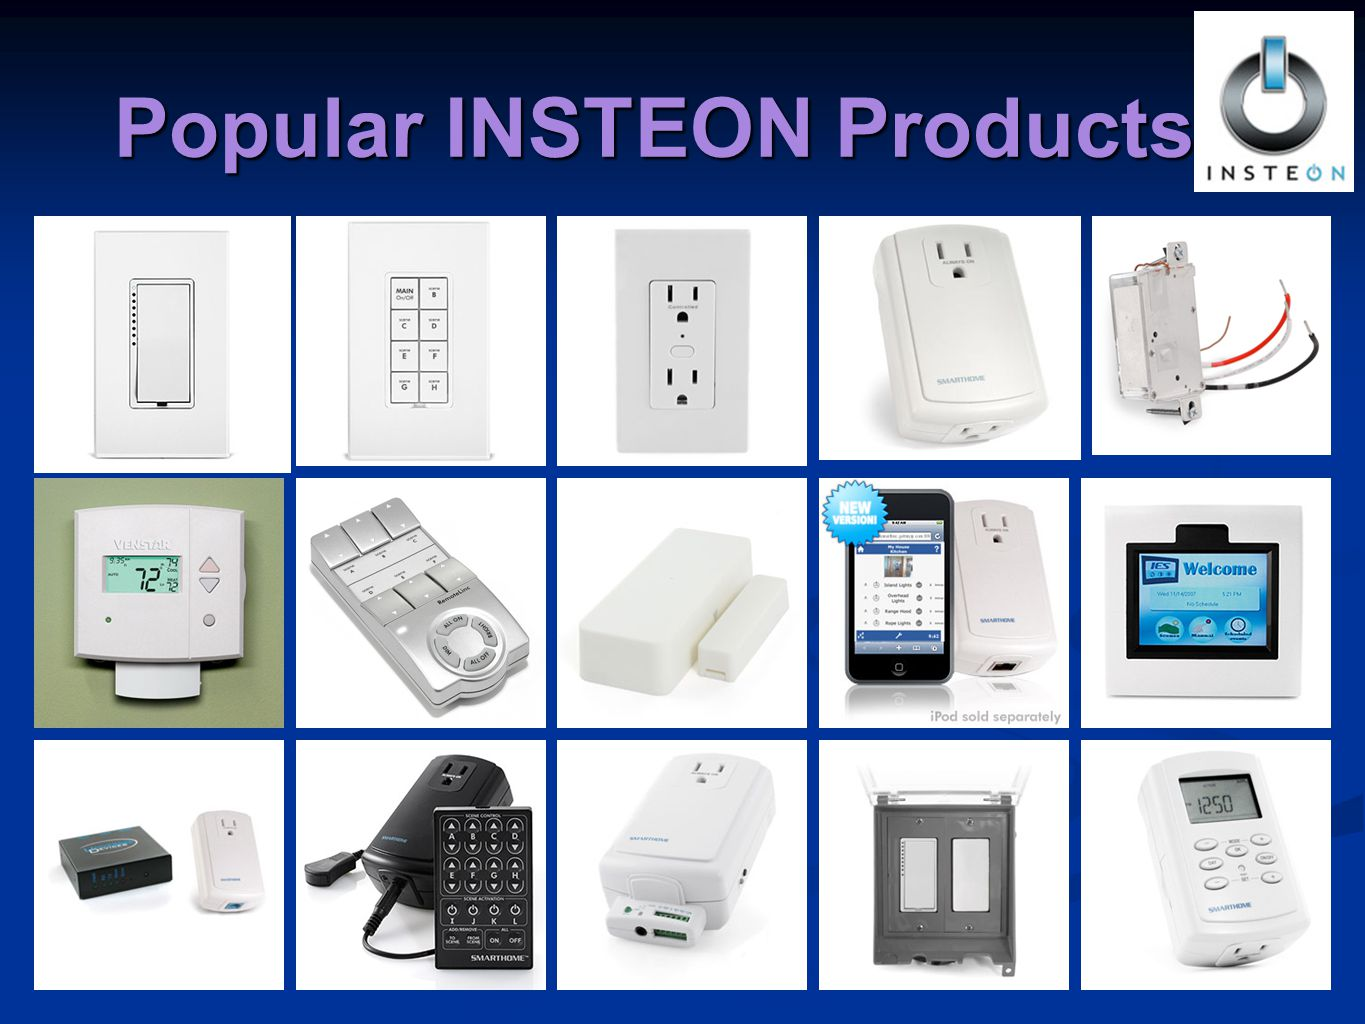 Popular INSTEON Products